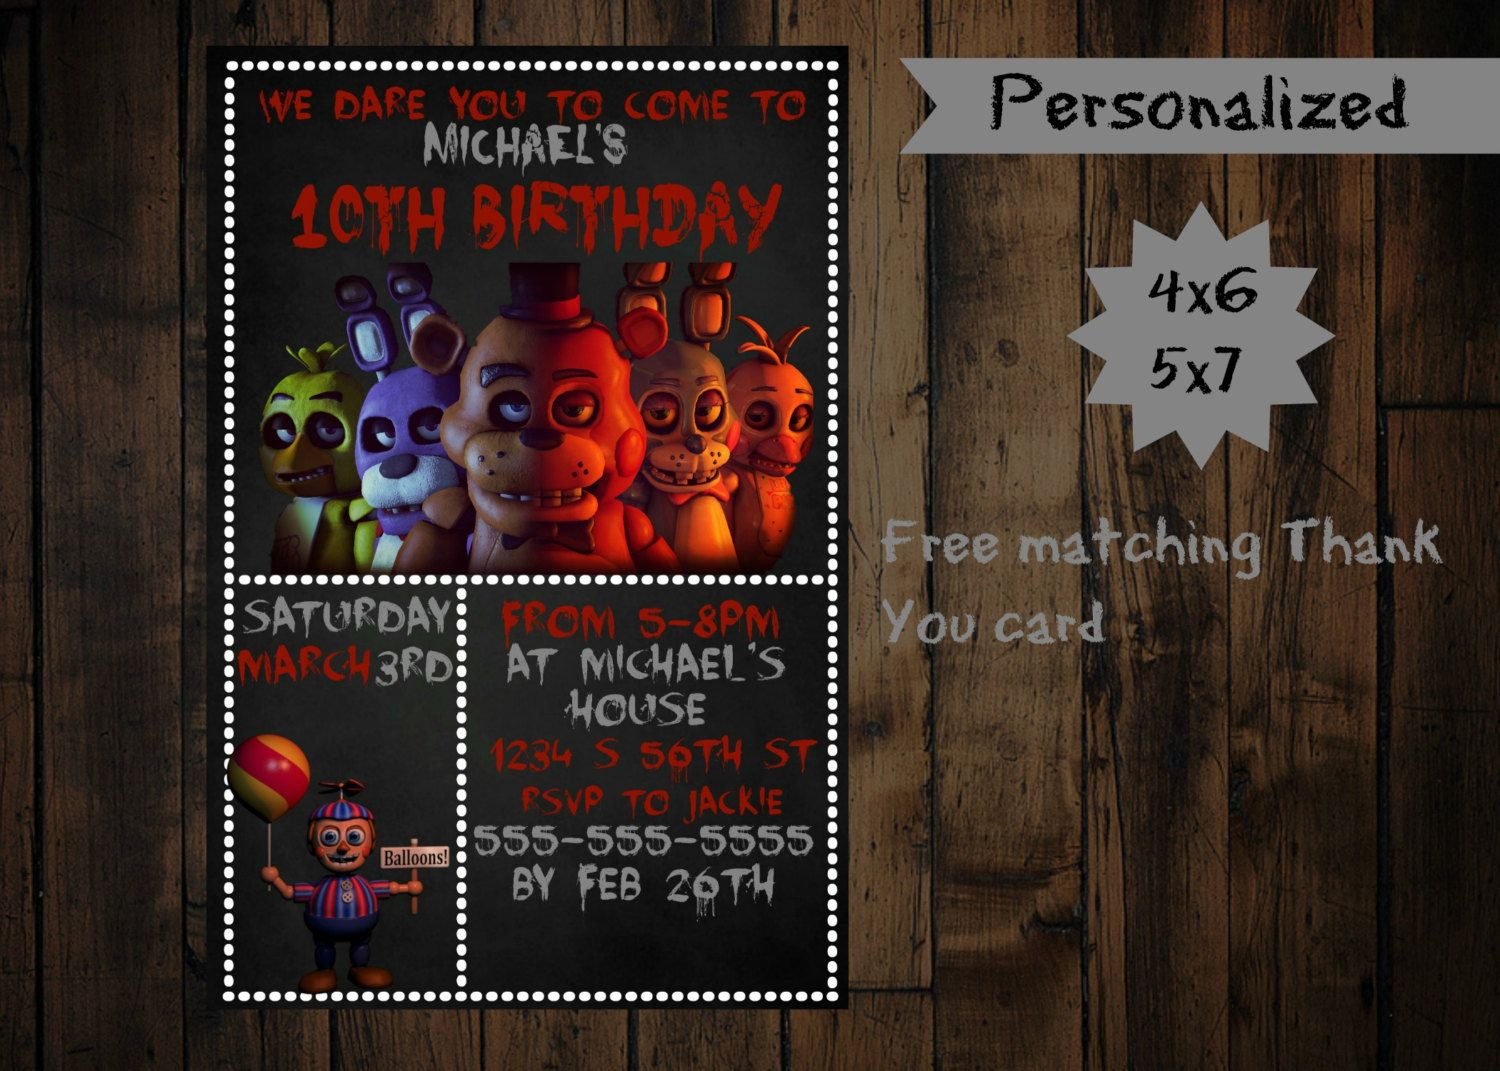 Five Nights at Freddy's Invitation  - Printable - Five Nights at freddys birthday invitation by PurplePalaceDesigns on Etsy